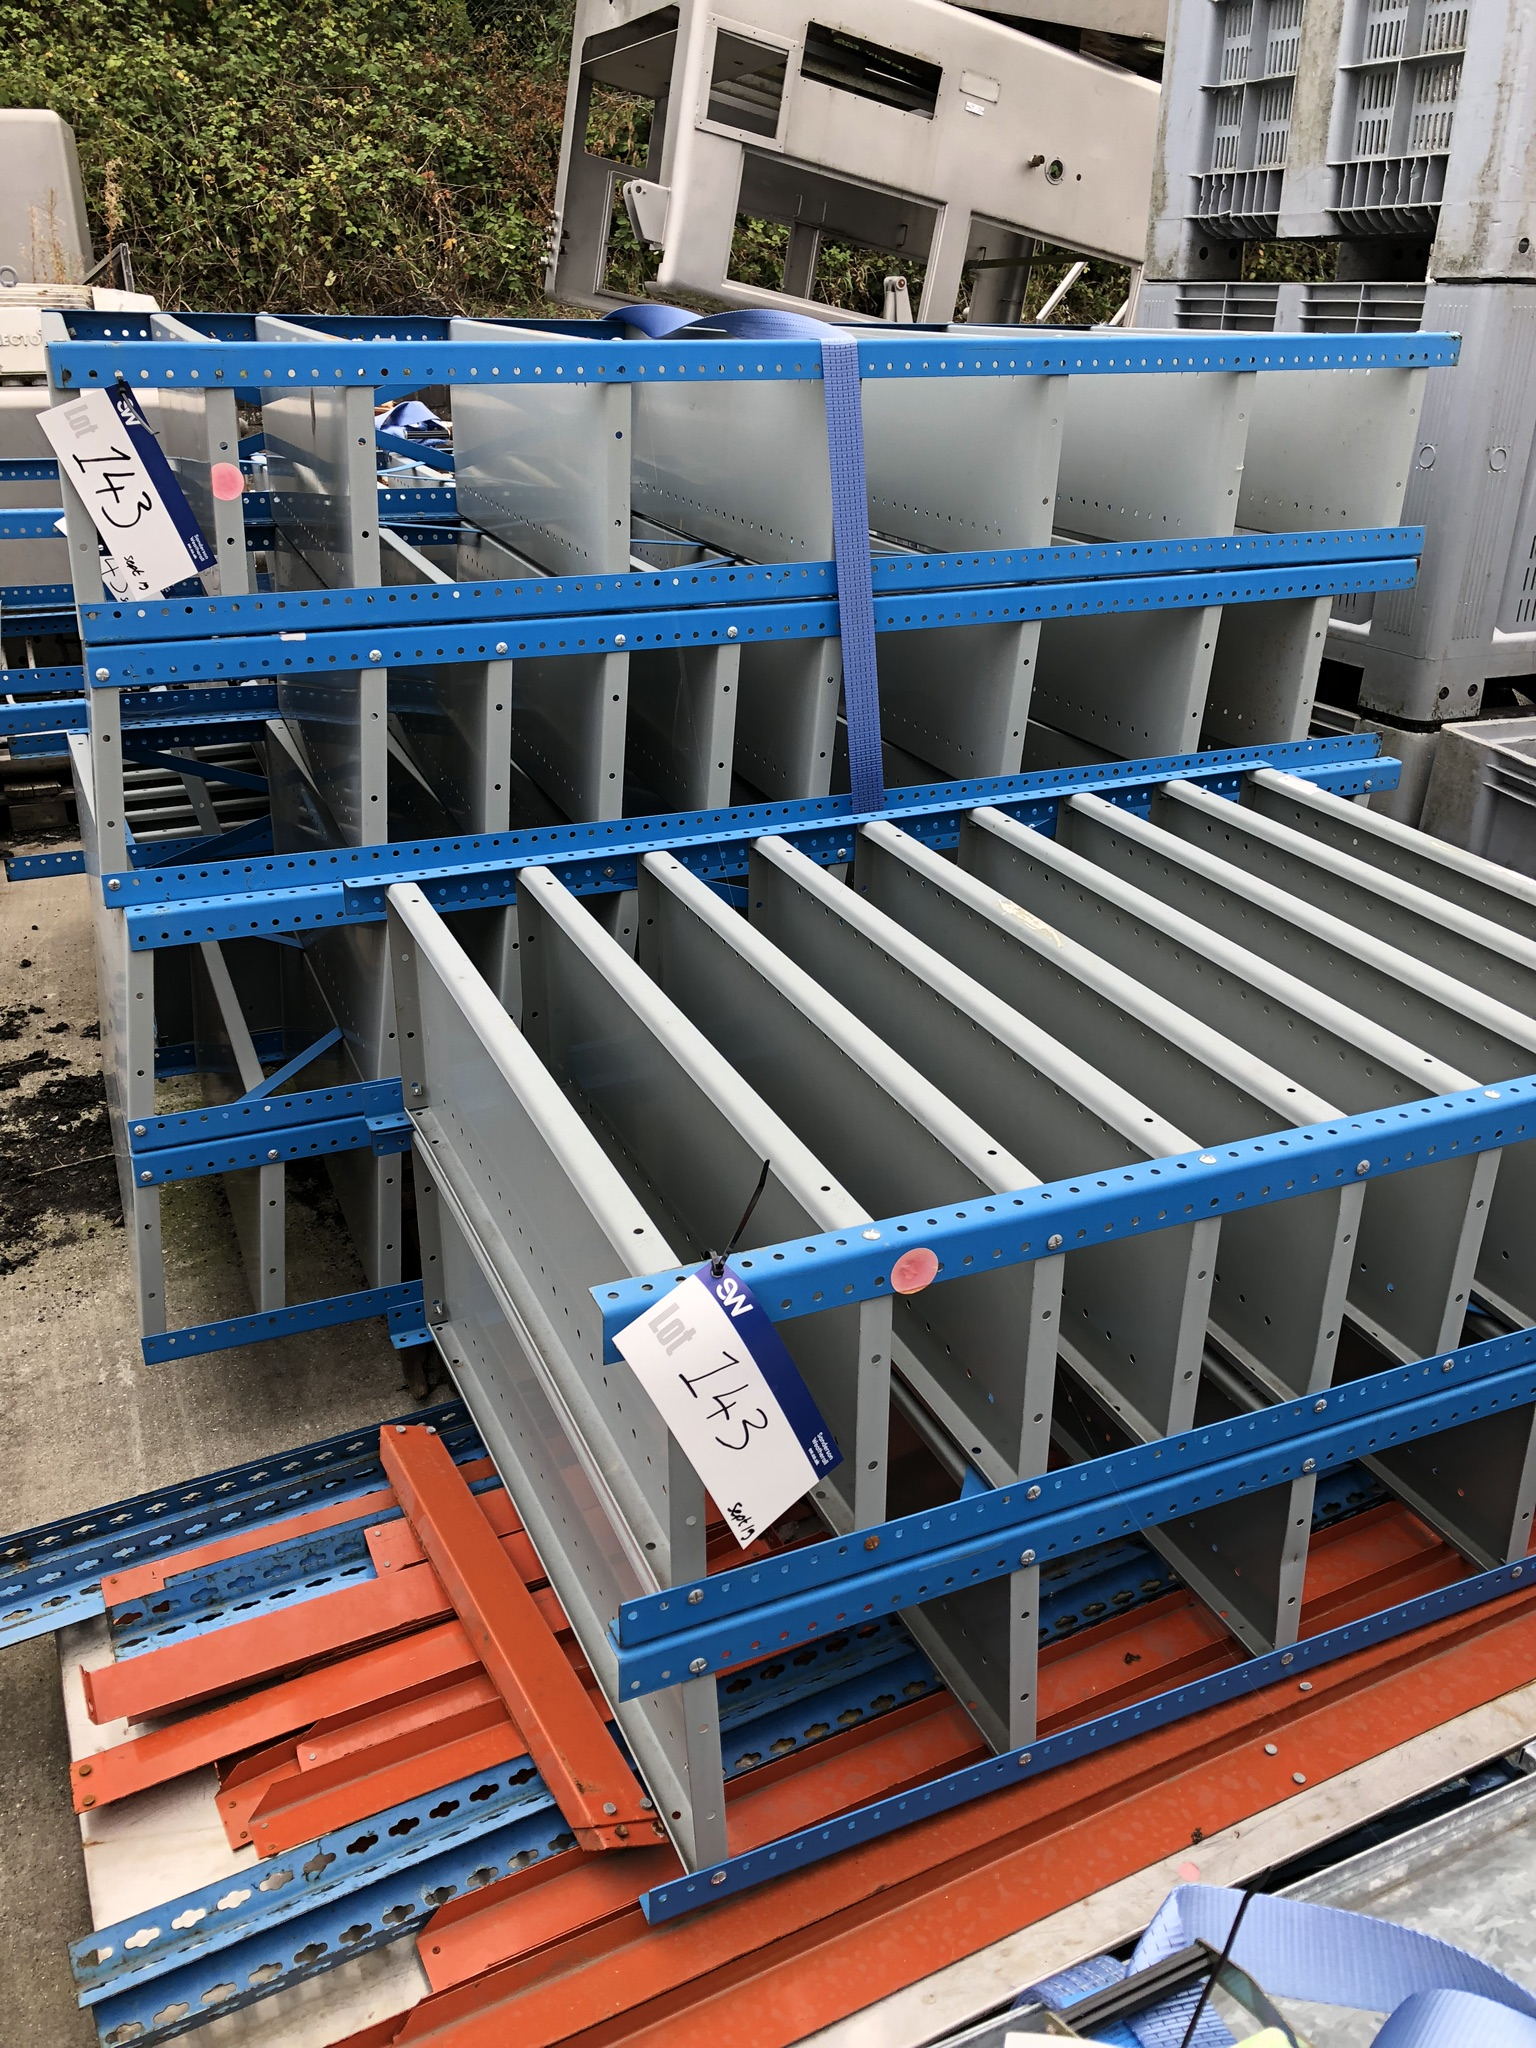 Lotto 143 - Nine Parts Shelves & Pallet Racking, approx. 2m x 1m x 0.3m, lift out charge - £20